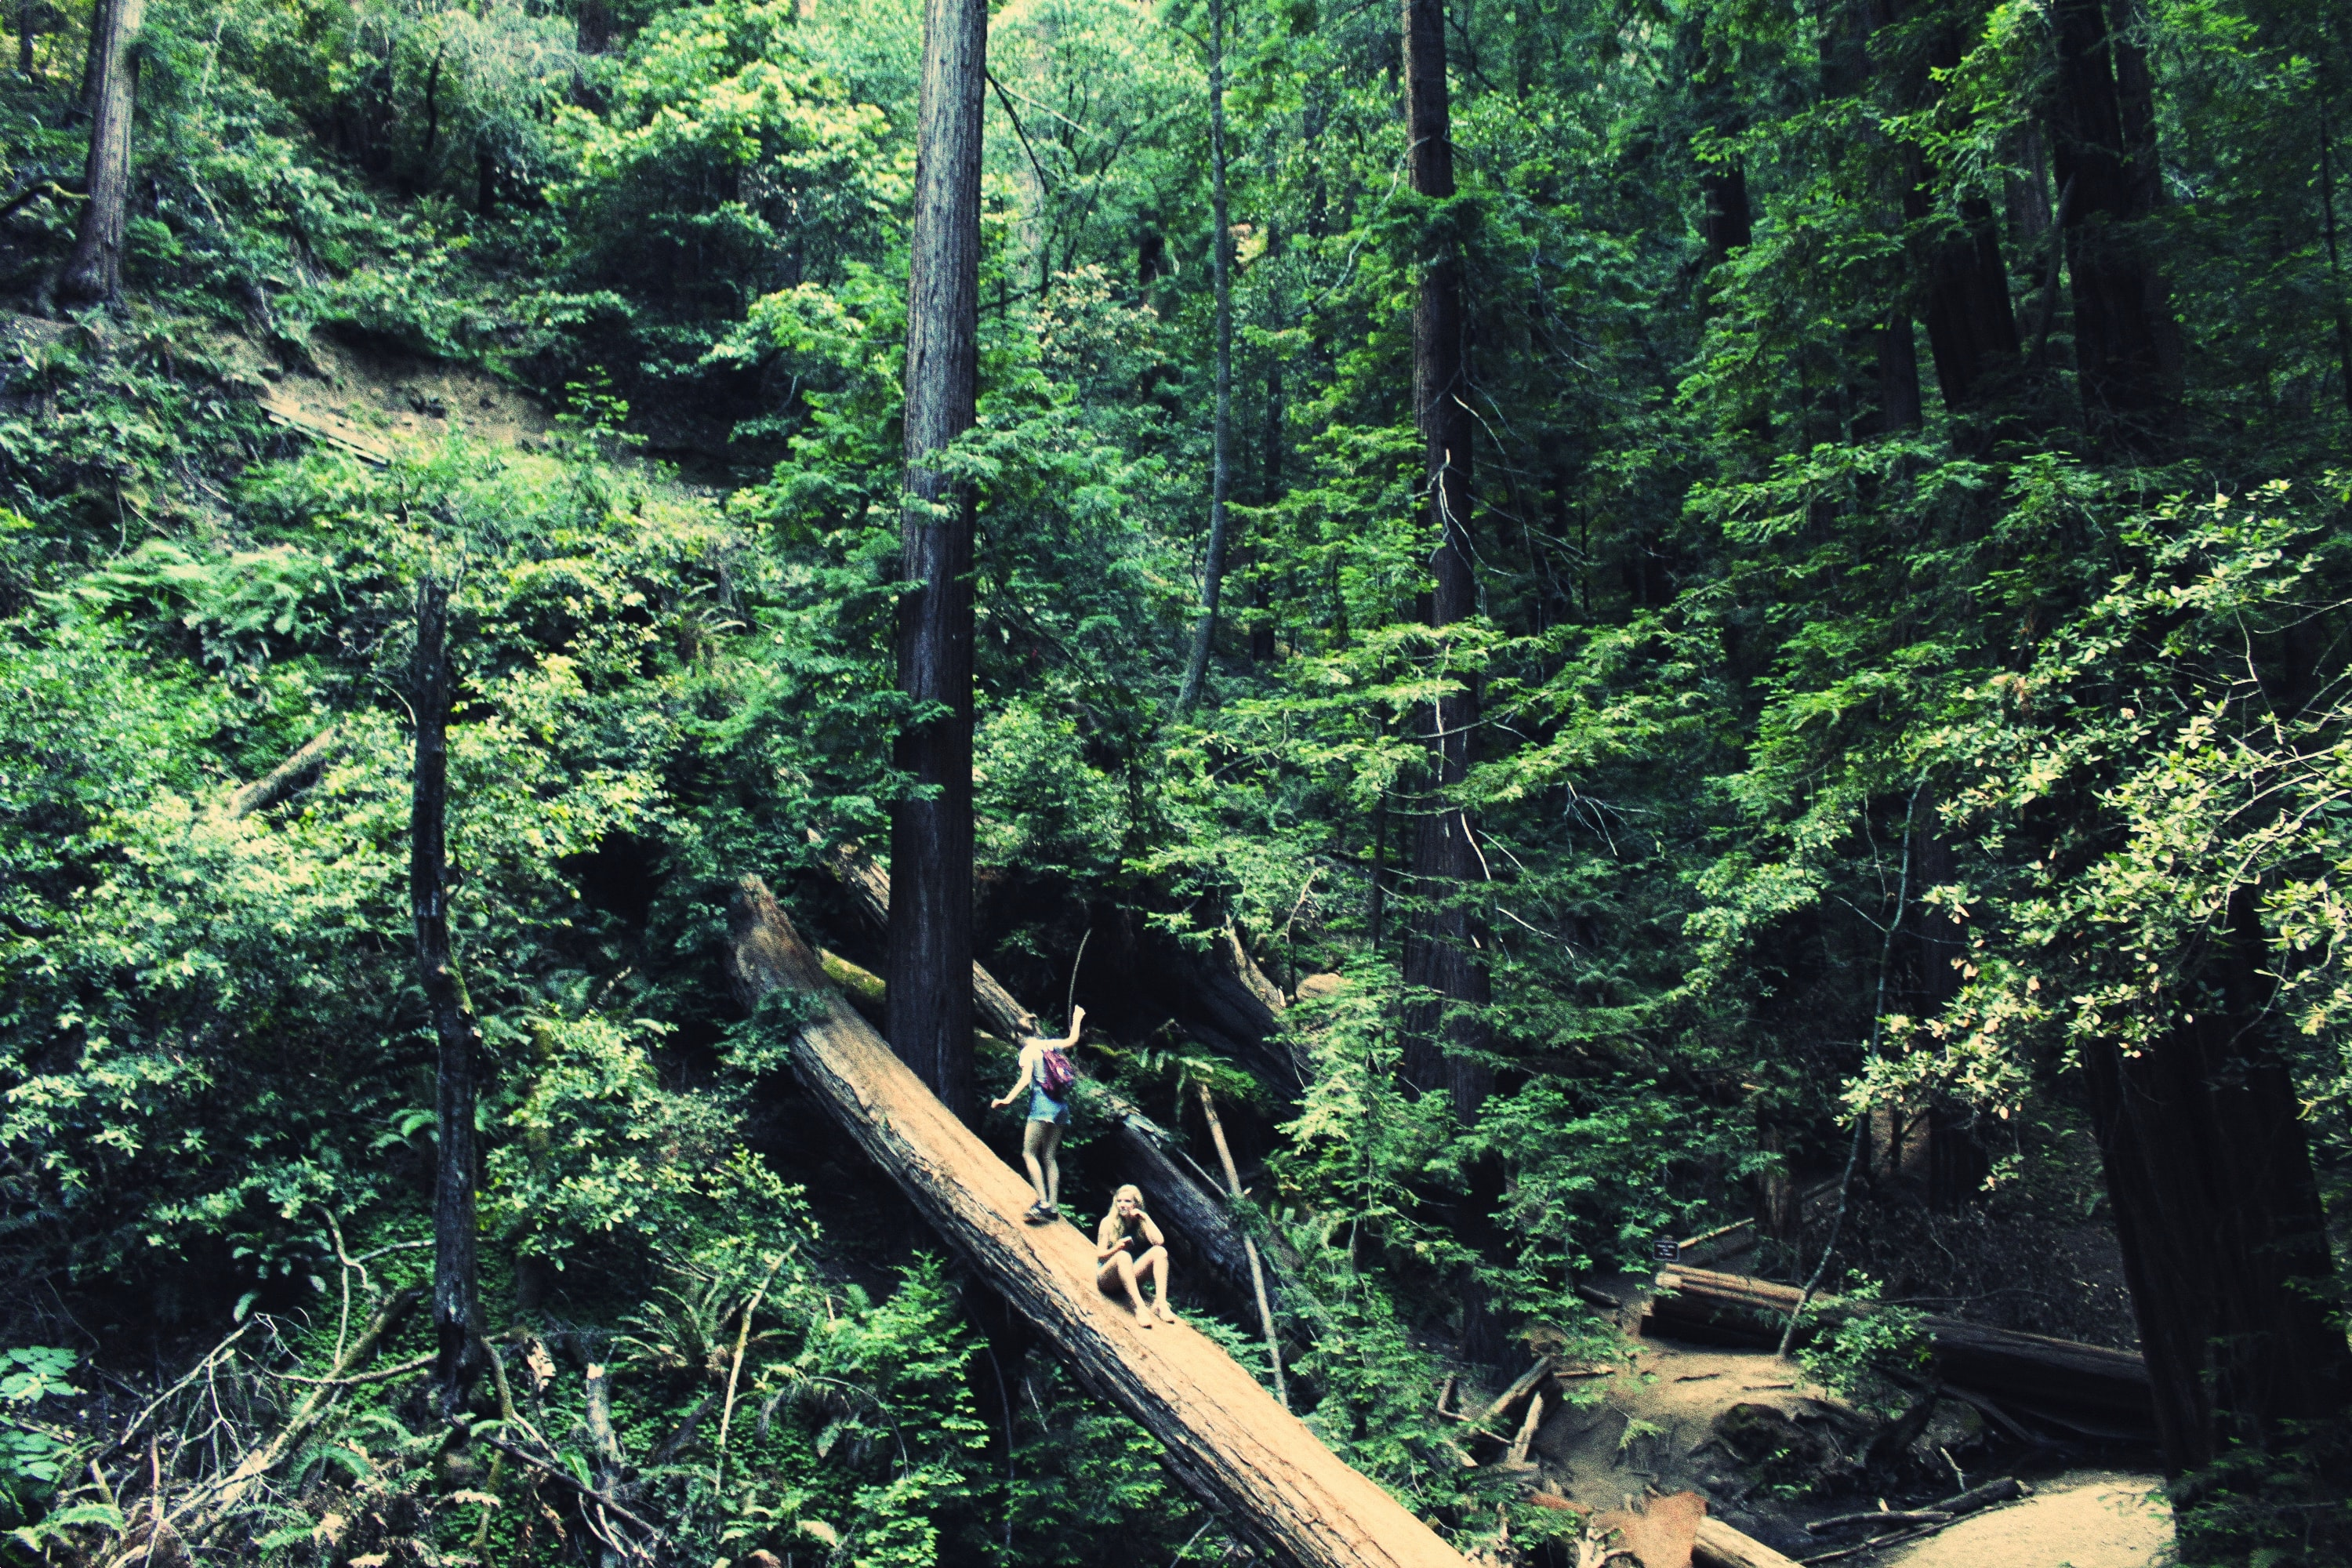 People hiking across a fallen log surrounded by green trees in Muir Woods